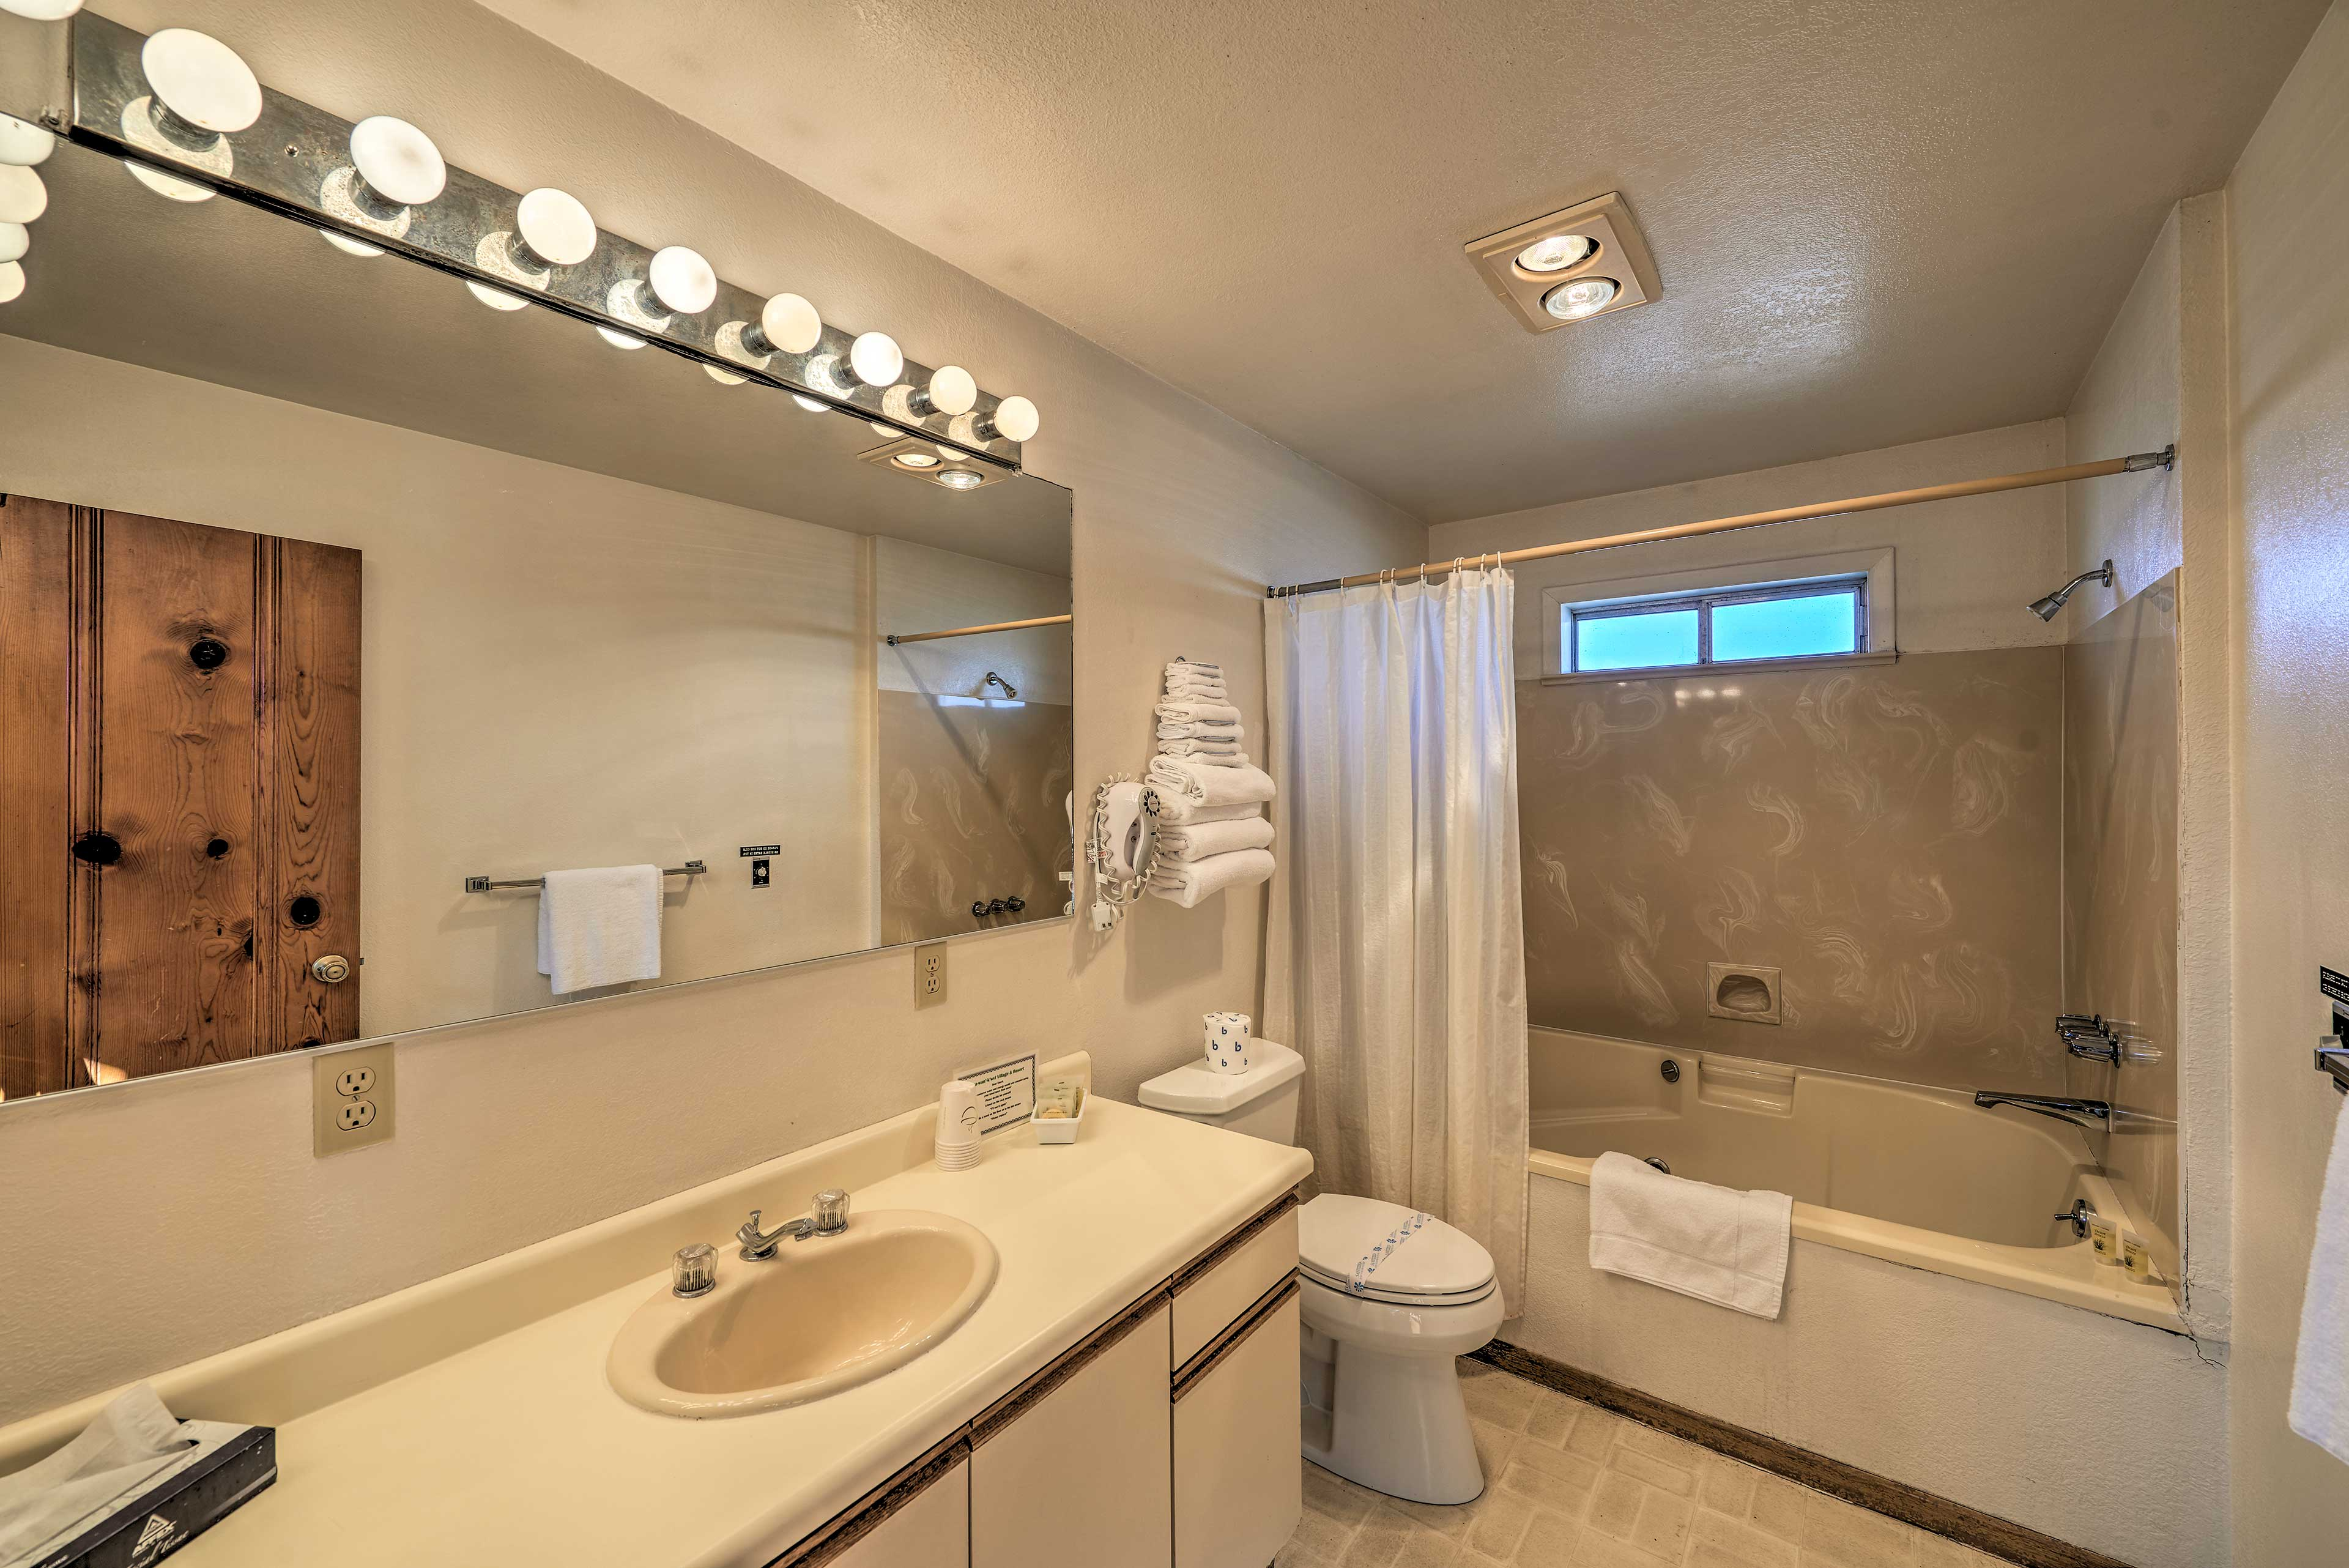 This spacious bathroom comes equipped with towels.